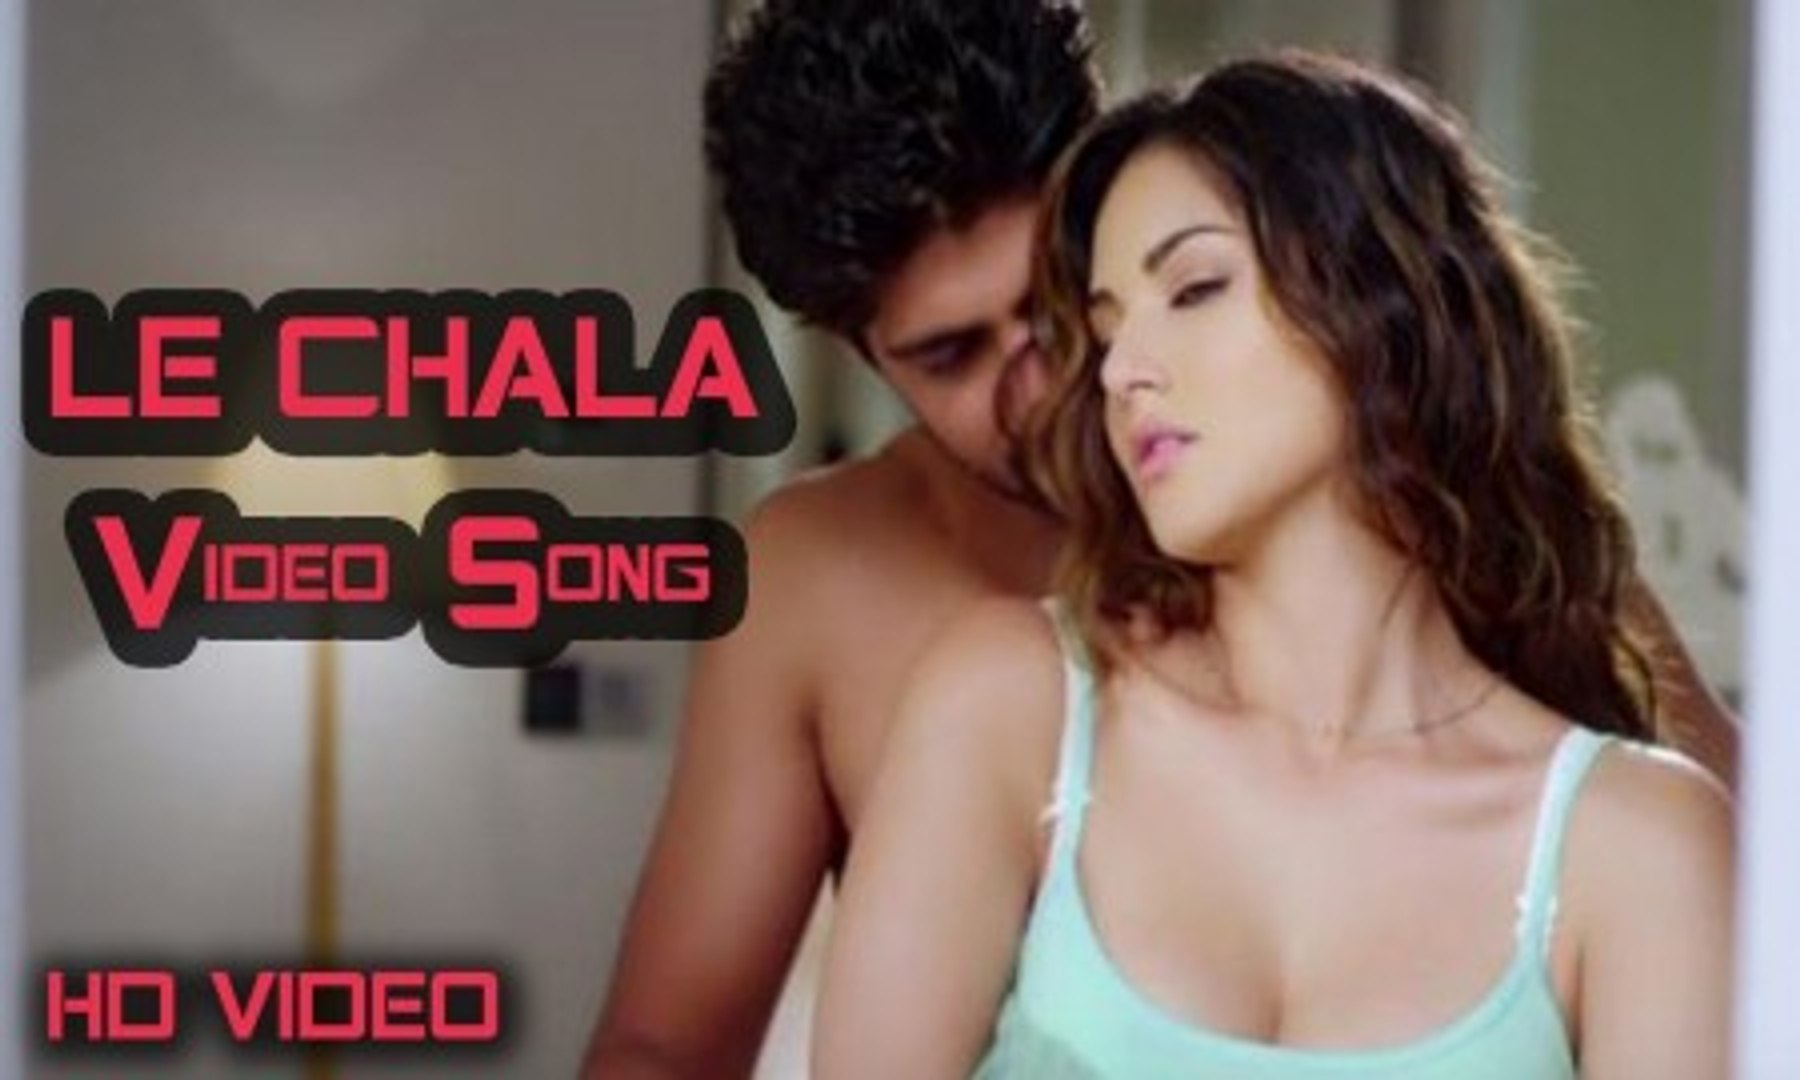 LE CHALA Full Video Song - ONE NIGHT STAND - HD